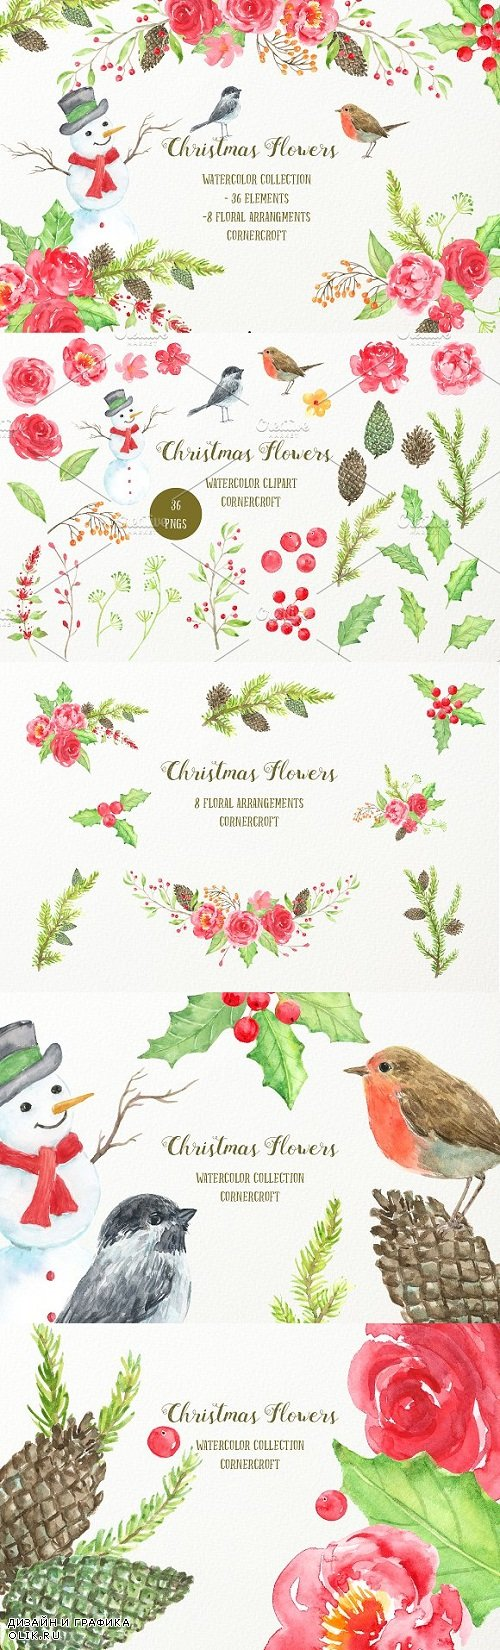 Watercolor Christmas Flowers - 2011791